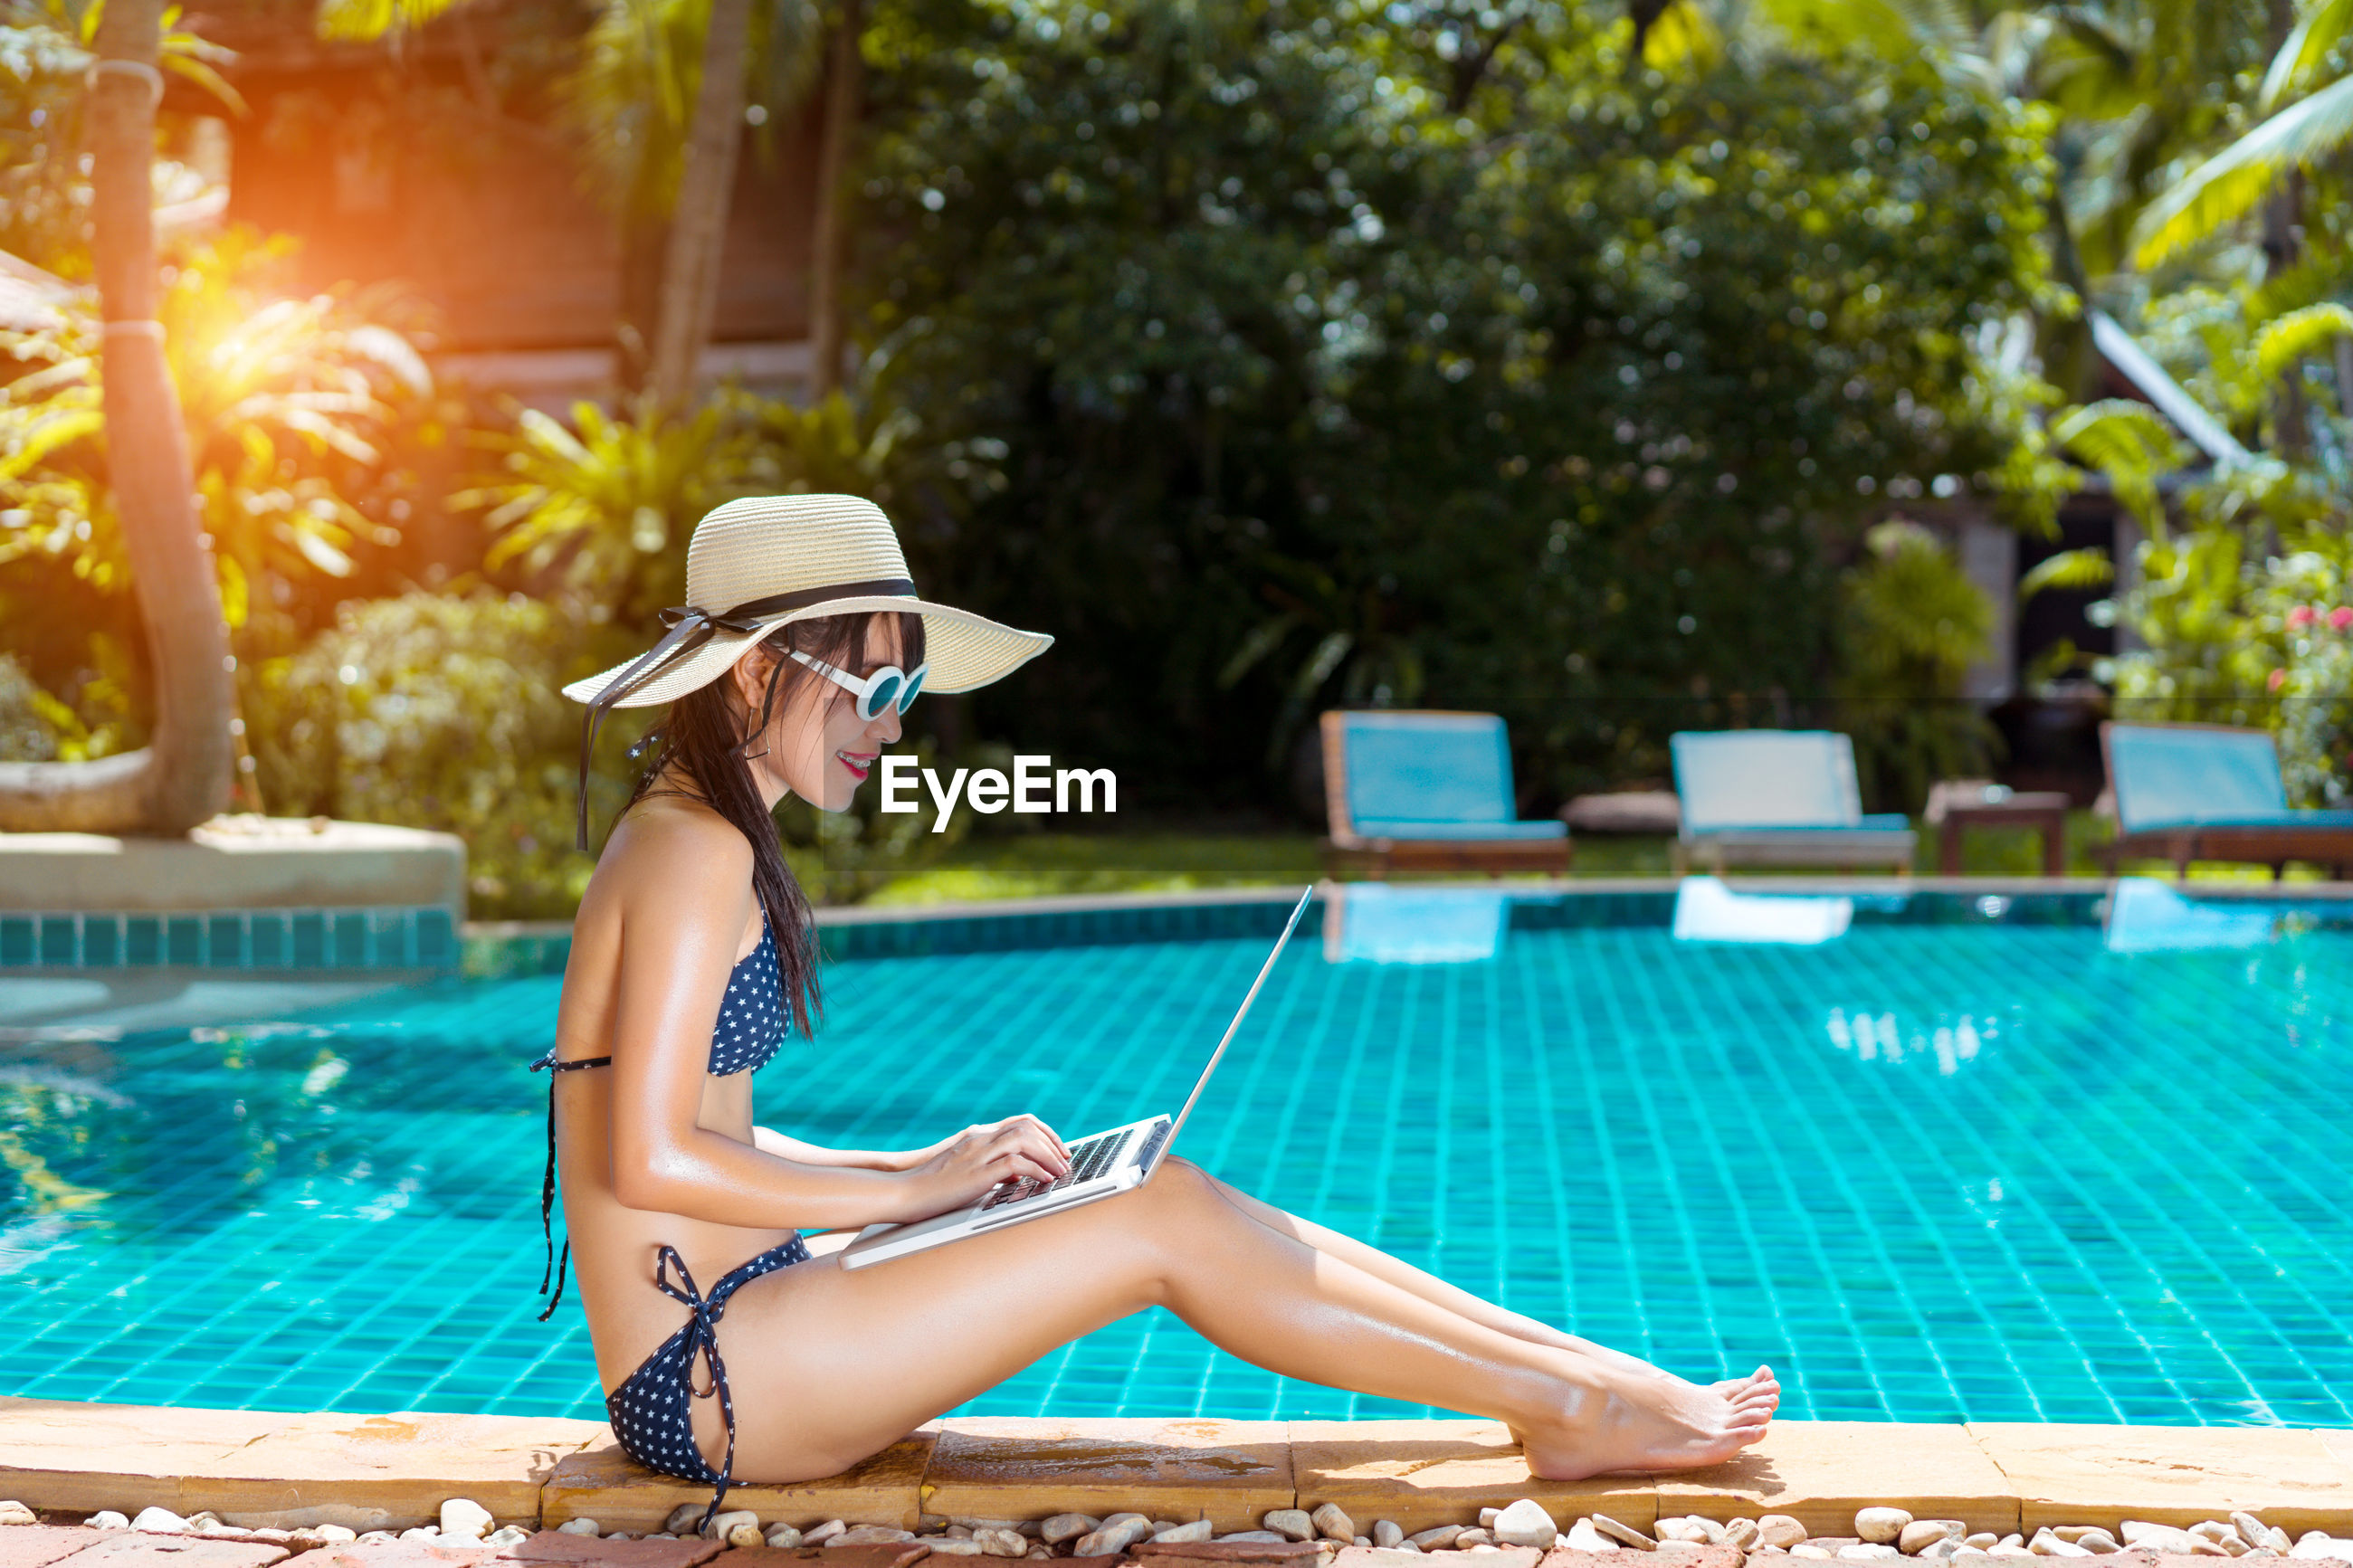 Side view of young woman typing on laptop while sitting on poolside